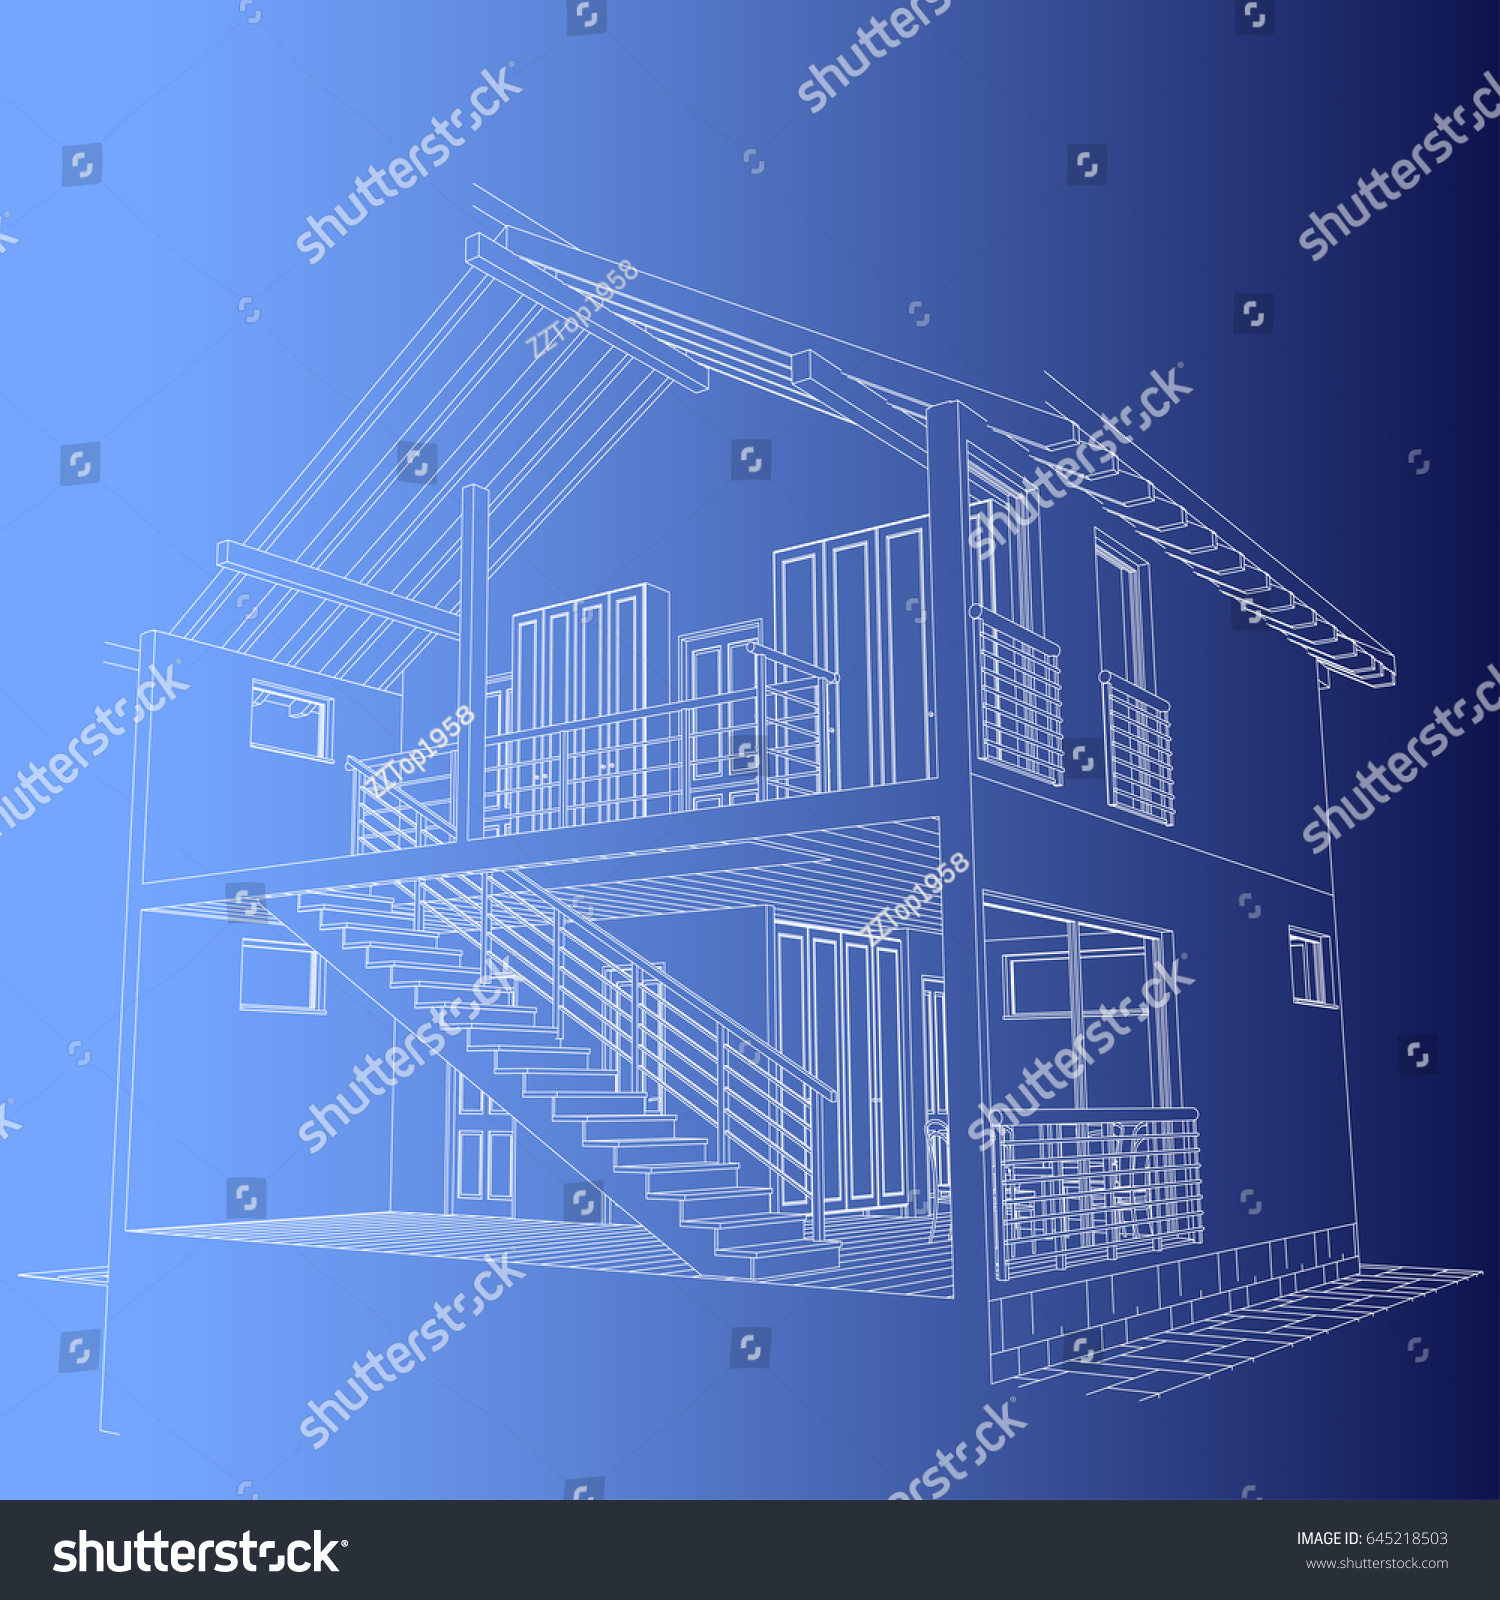 architectural design blueprint. The Author\u0027s Project- Blueprint Of Architectural Design Half-timbered Residential House With